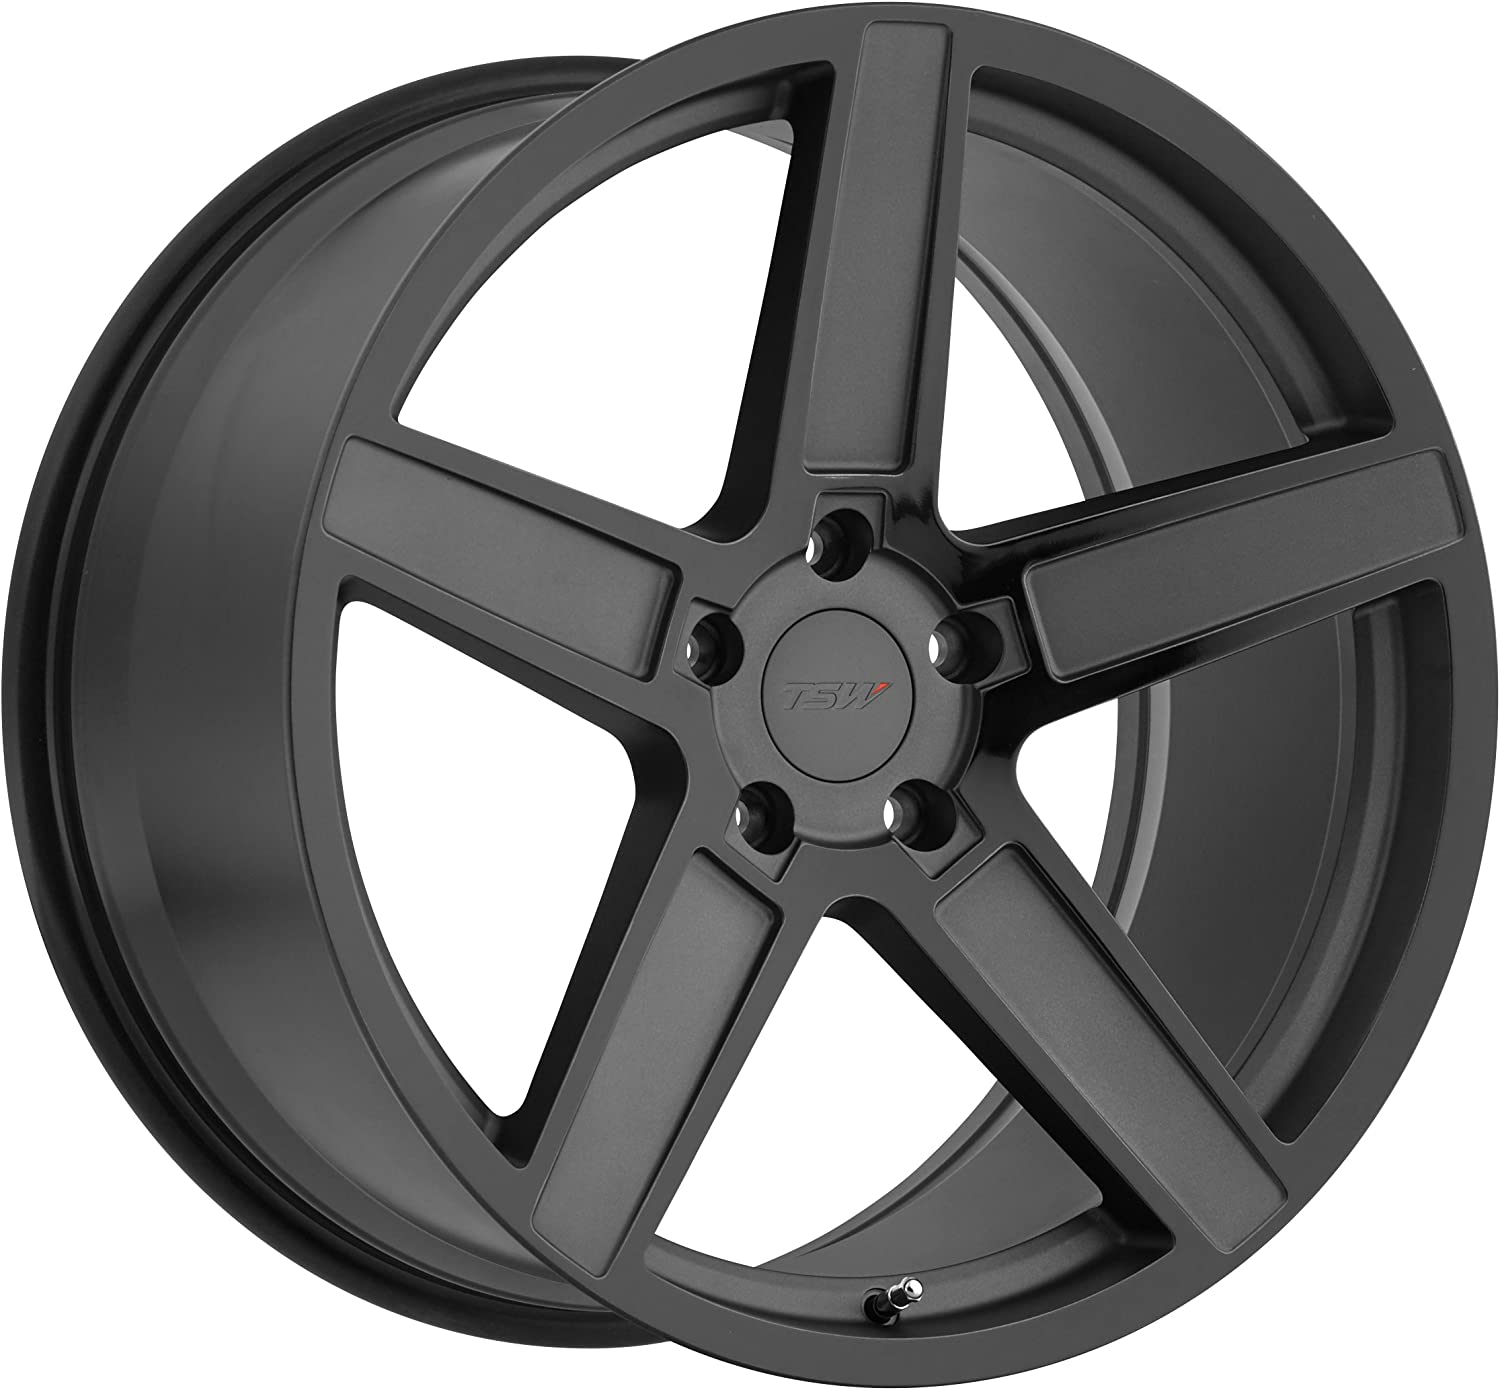 TSW ASCENT Grey Wheel with Painted Finish 18 x 9.5 inches //5 x 114 mm, 40 mm Offset